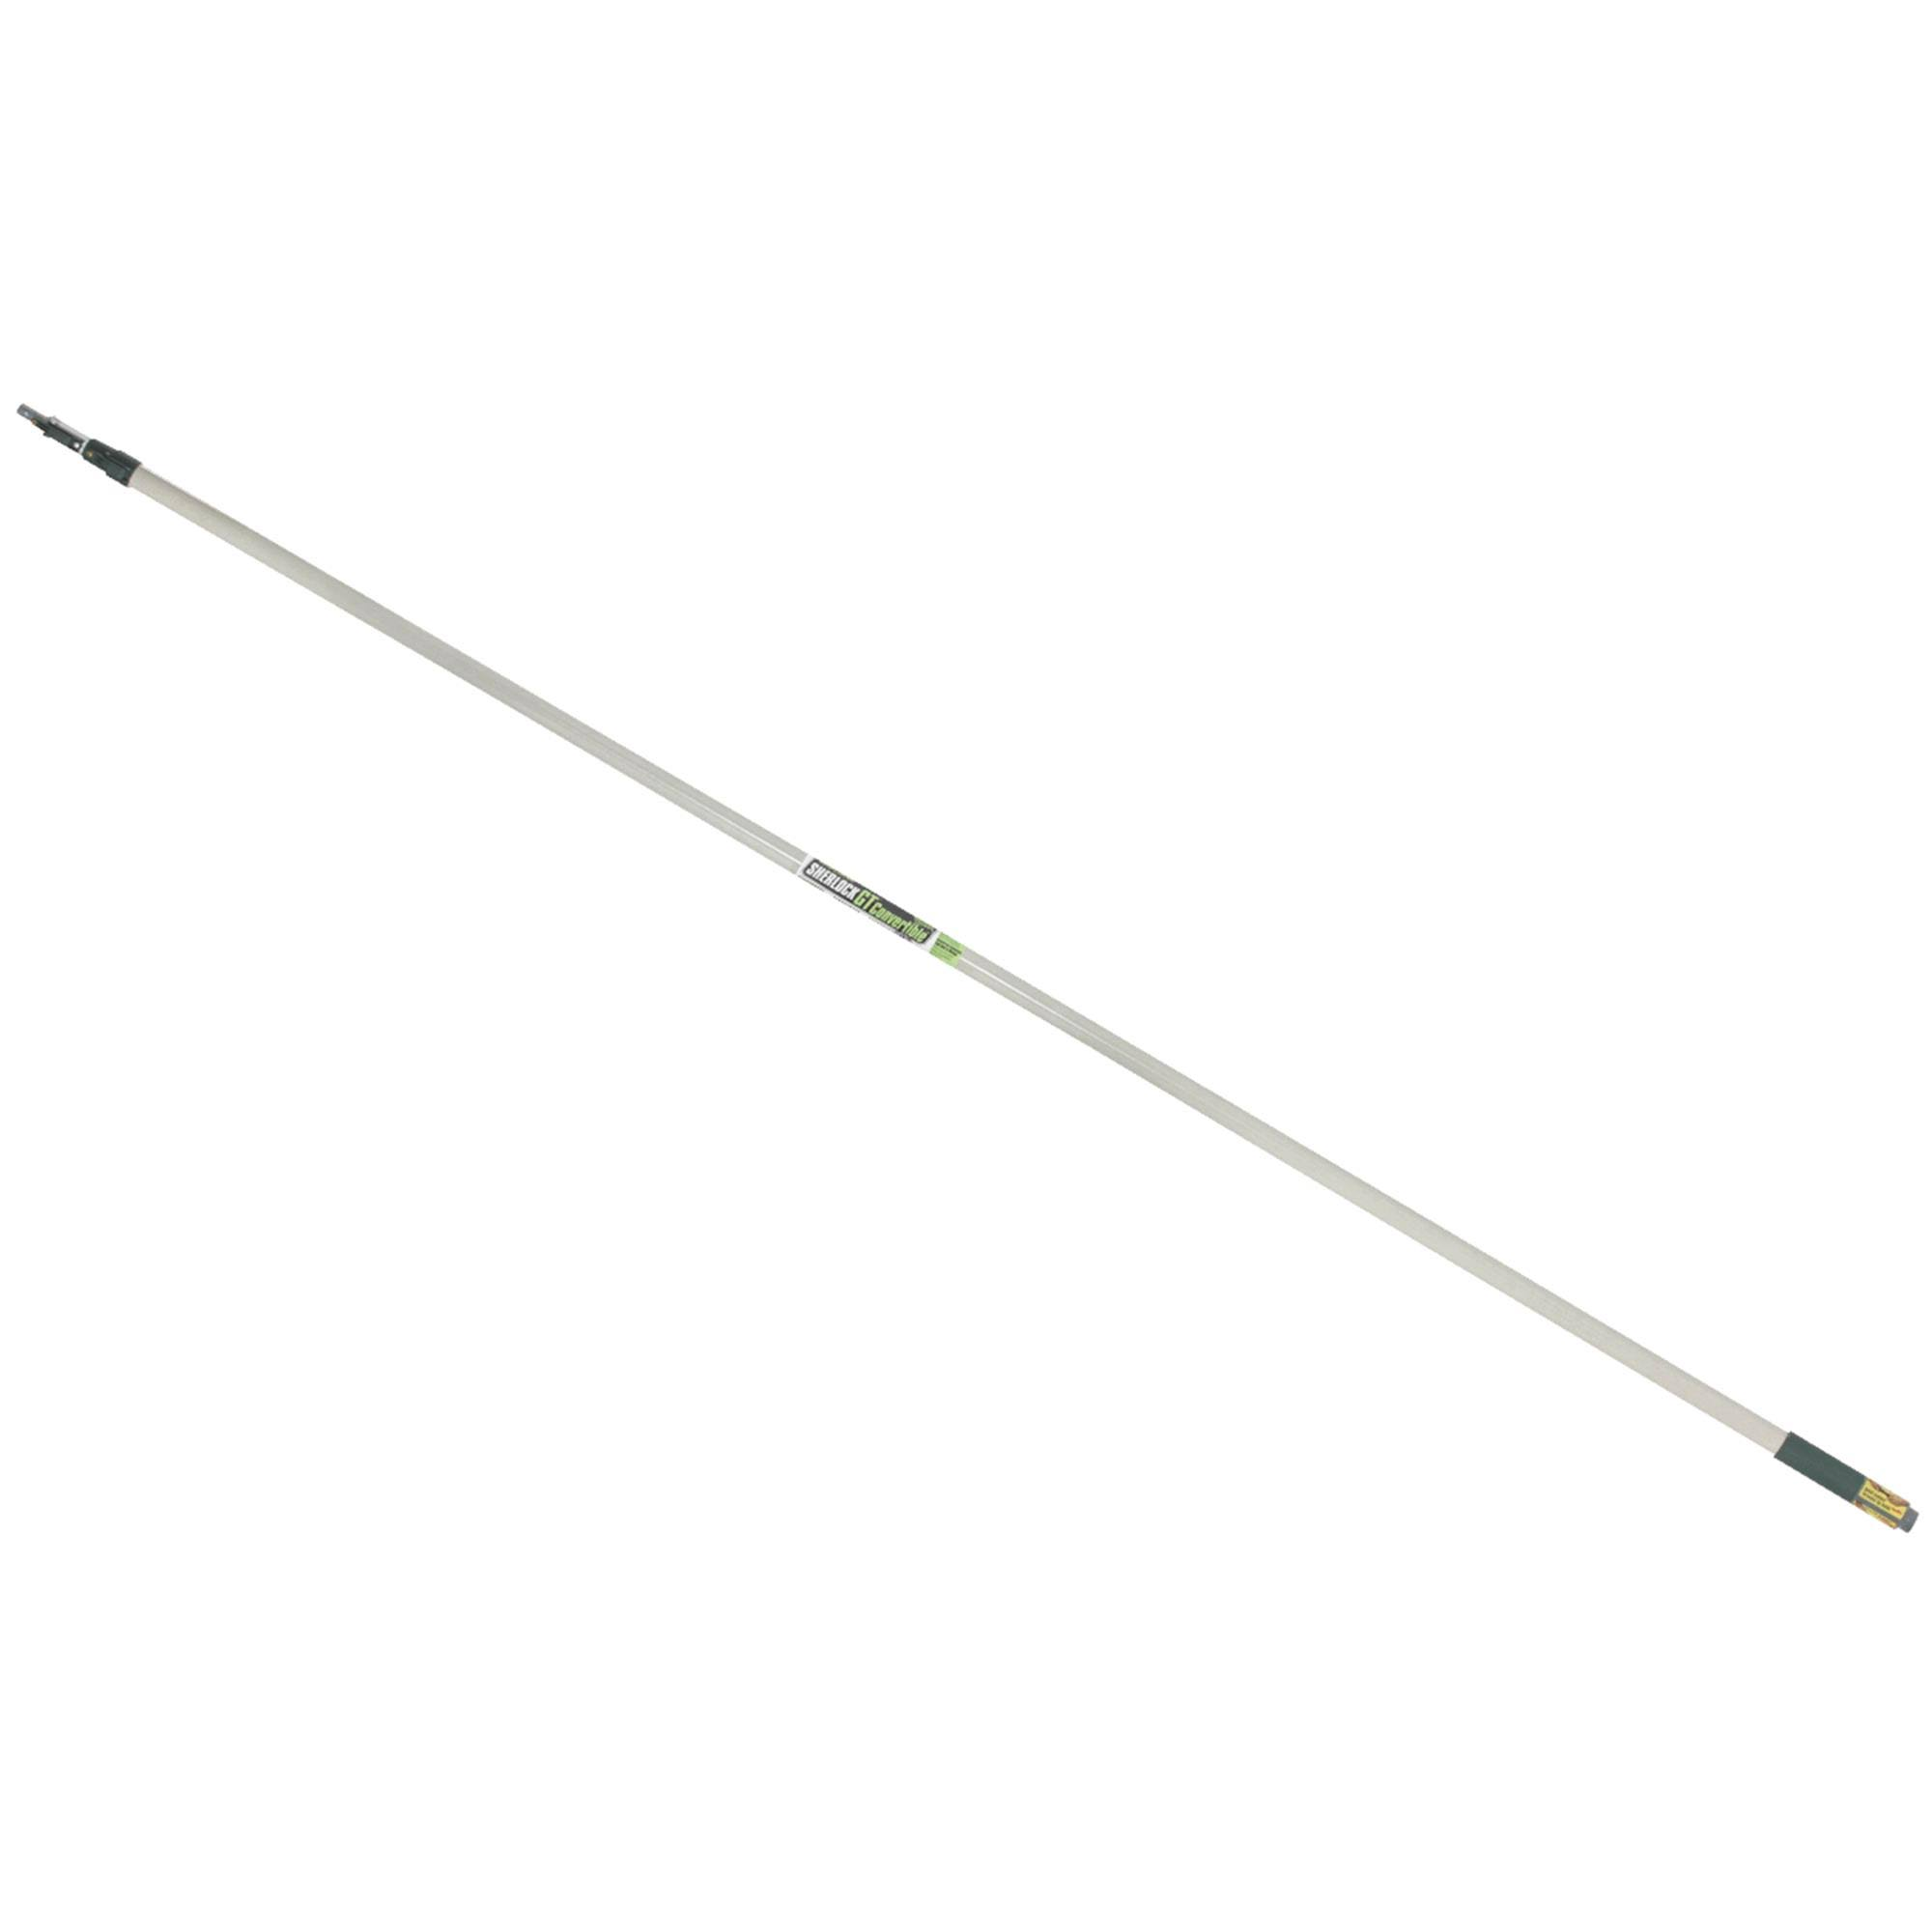 Wooster Sherlock GT Convertible Extension Pole - R096